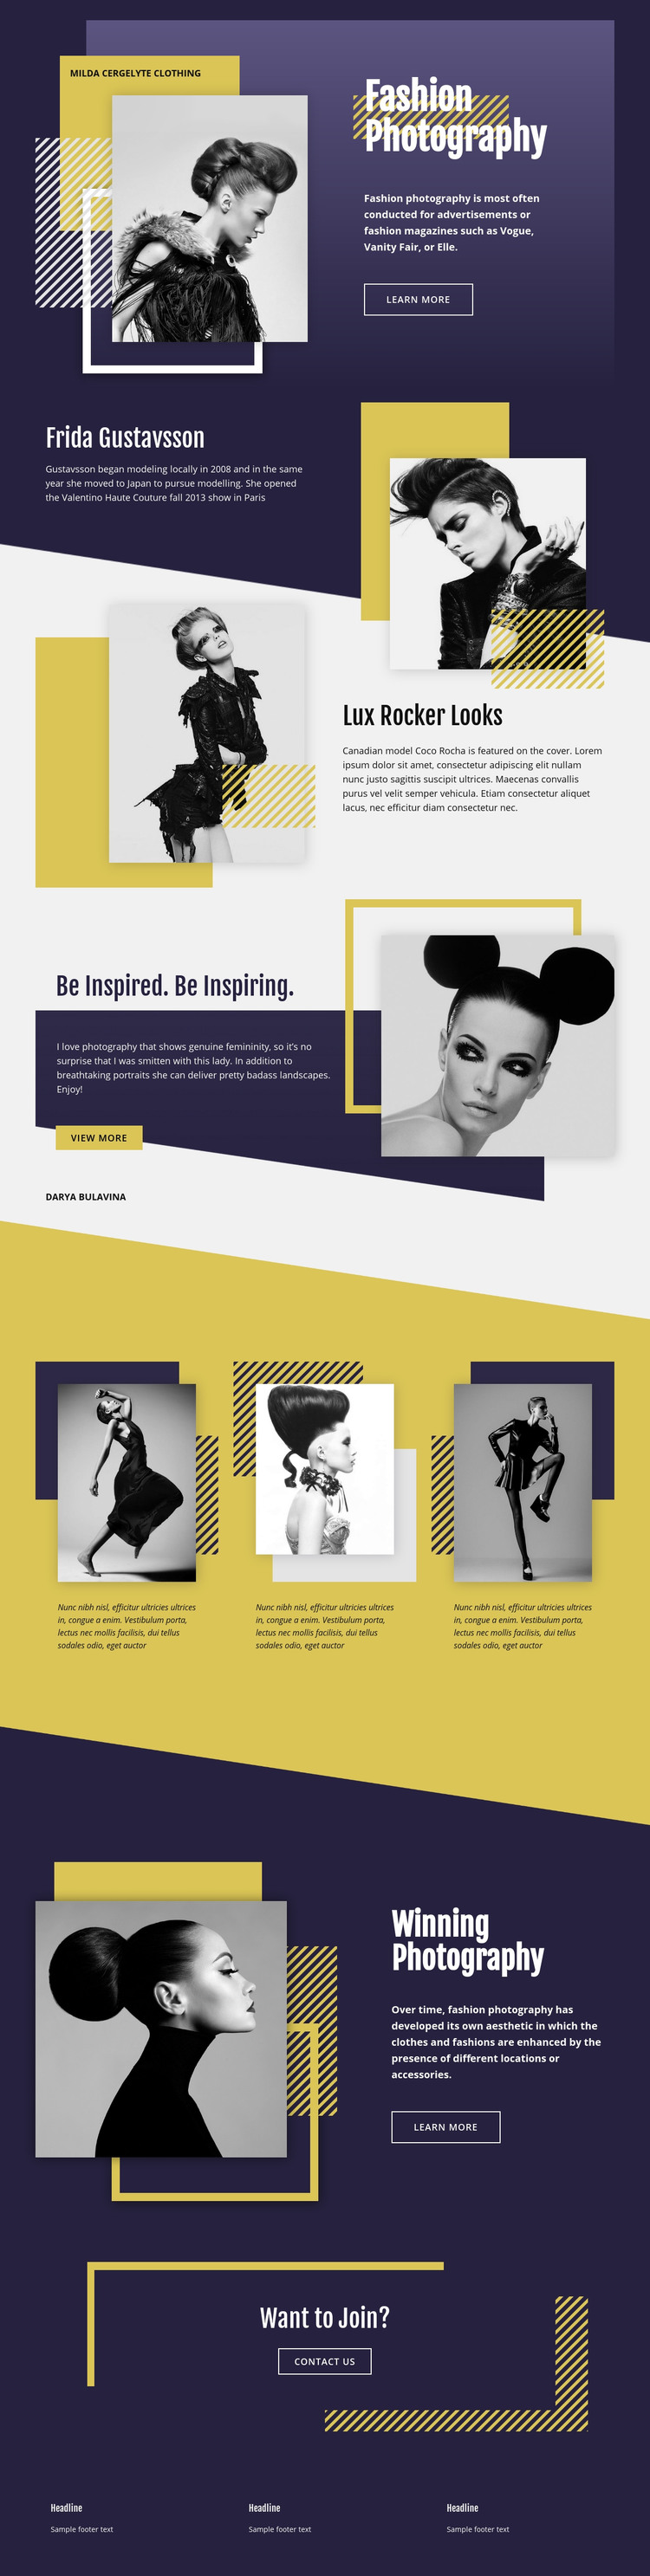 Fashion Photography Overlapping Homepage Design